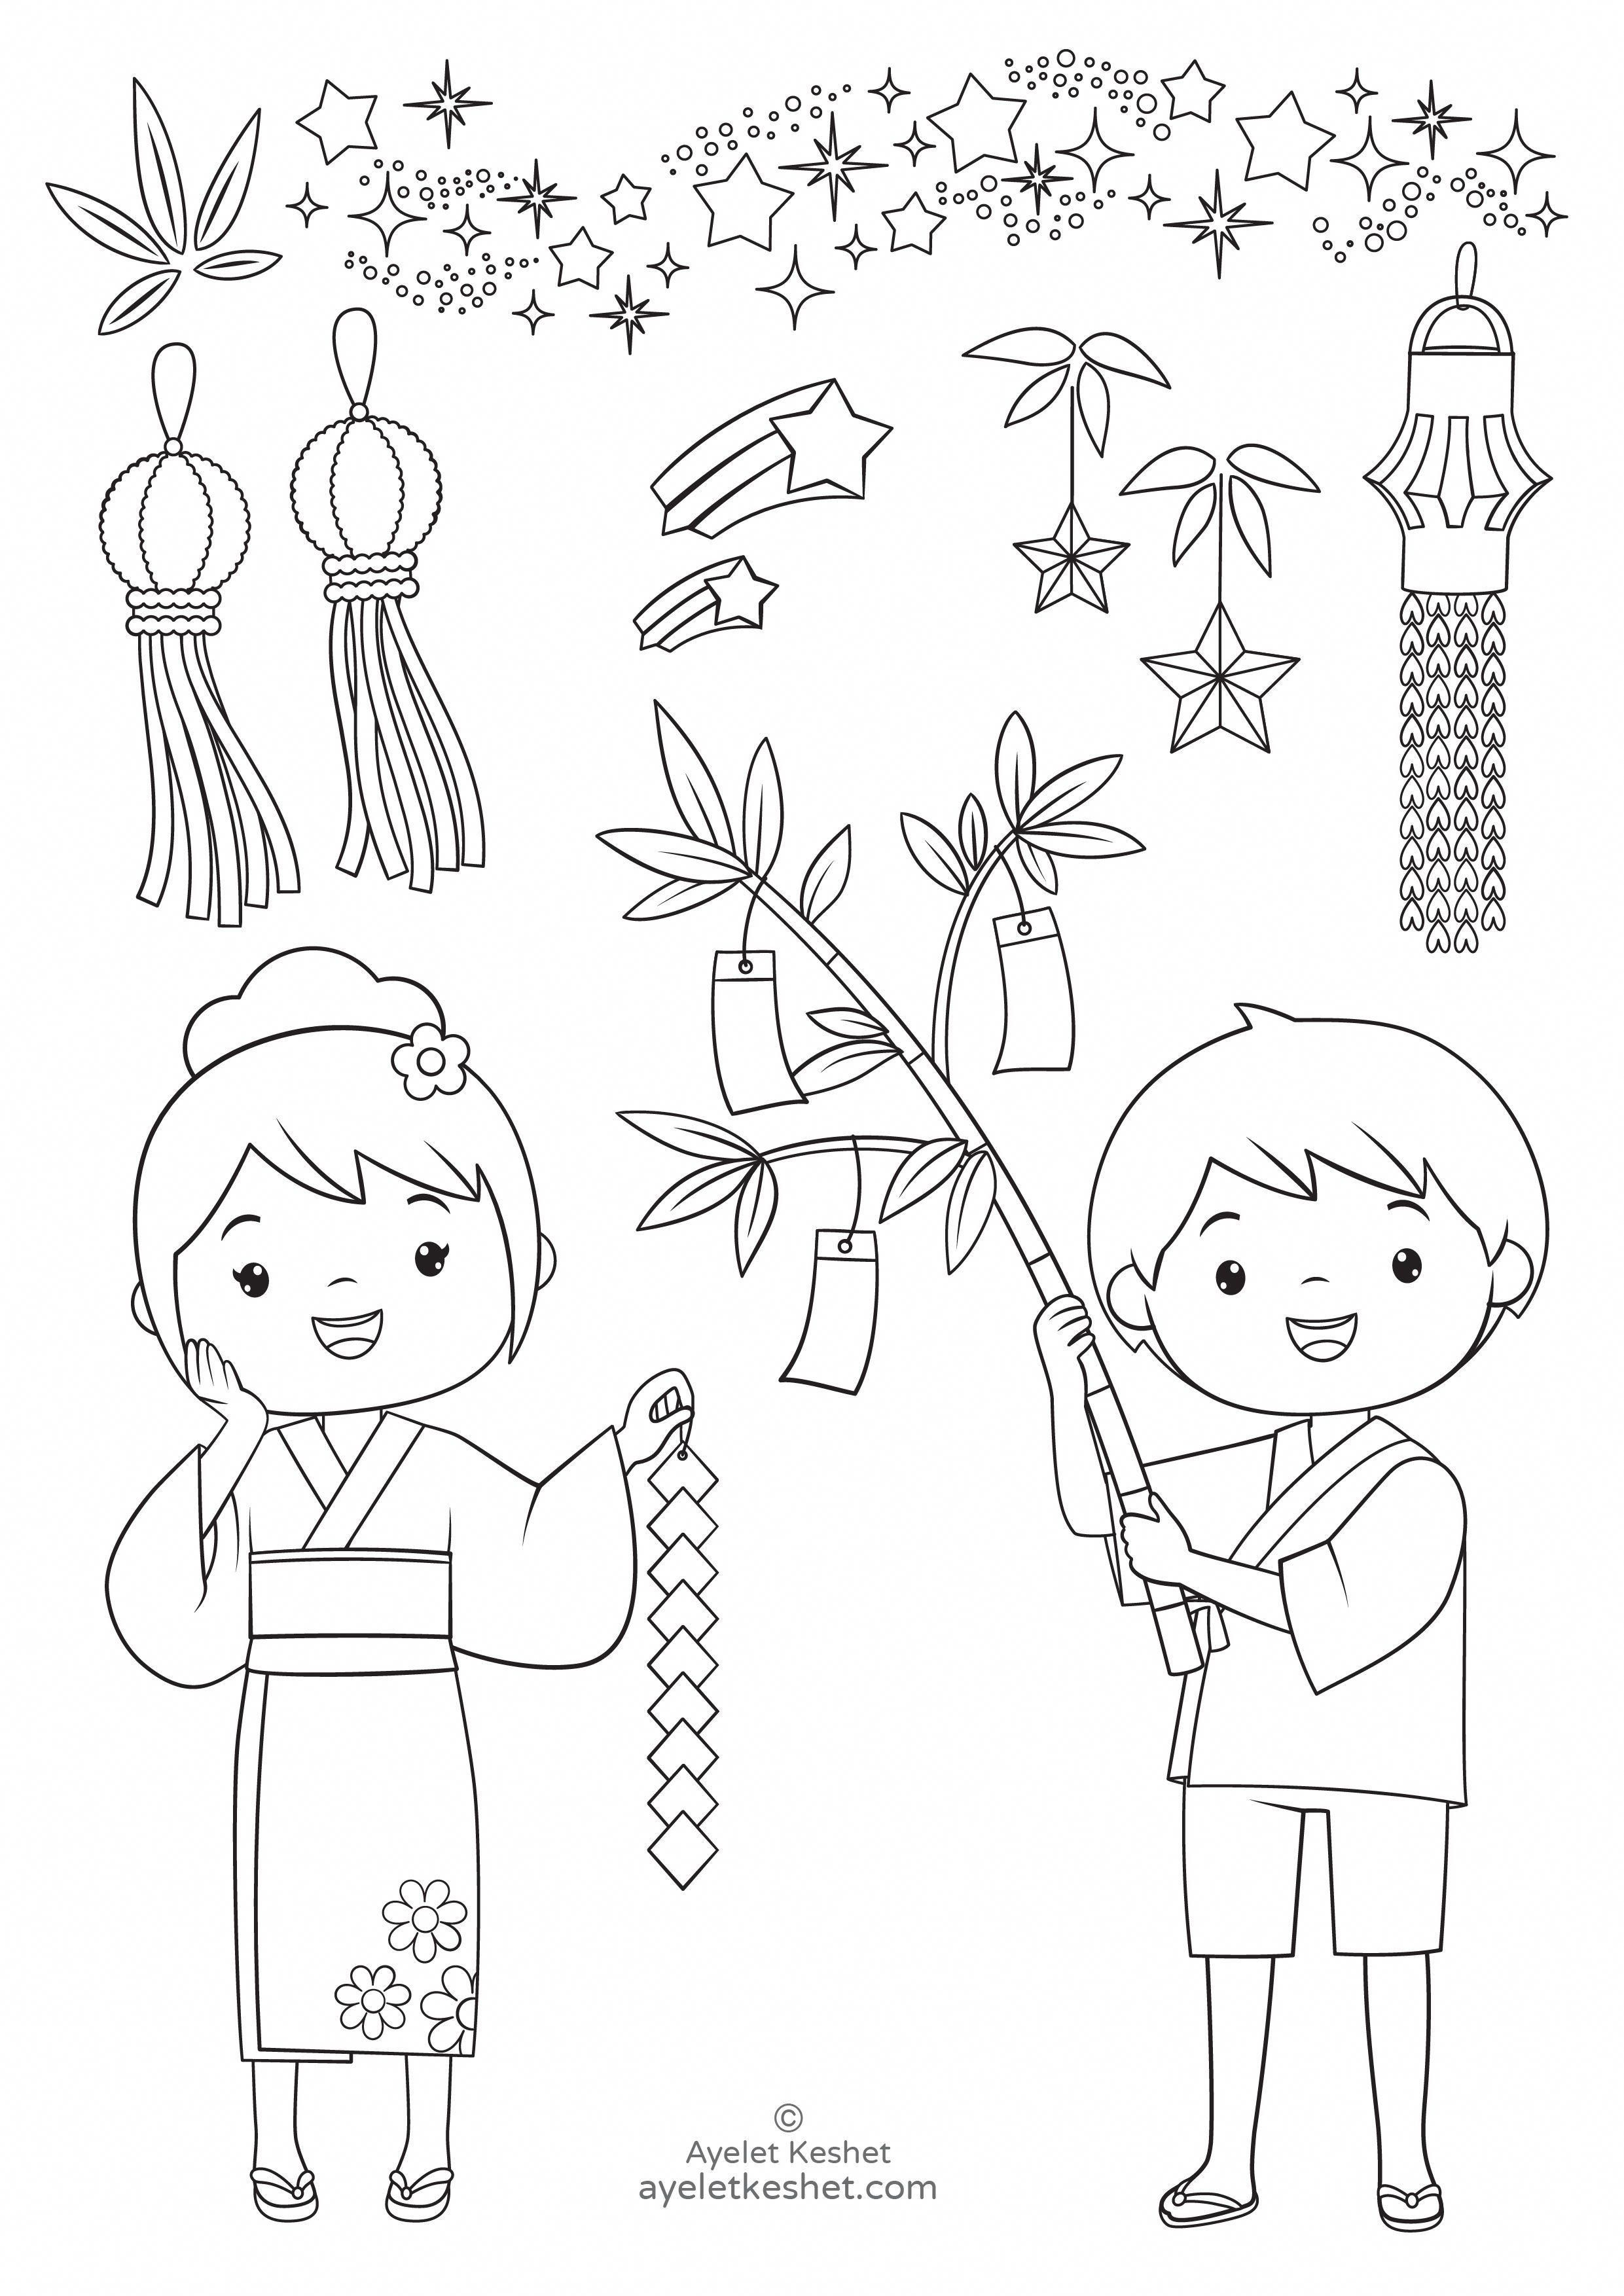 Free Coloring Pages About Japan For Kids Ayelet Keshet Japan For Kids Coloring Japan Japan Crafts